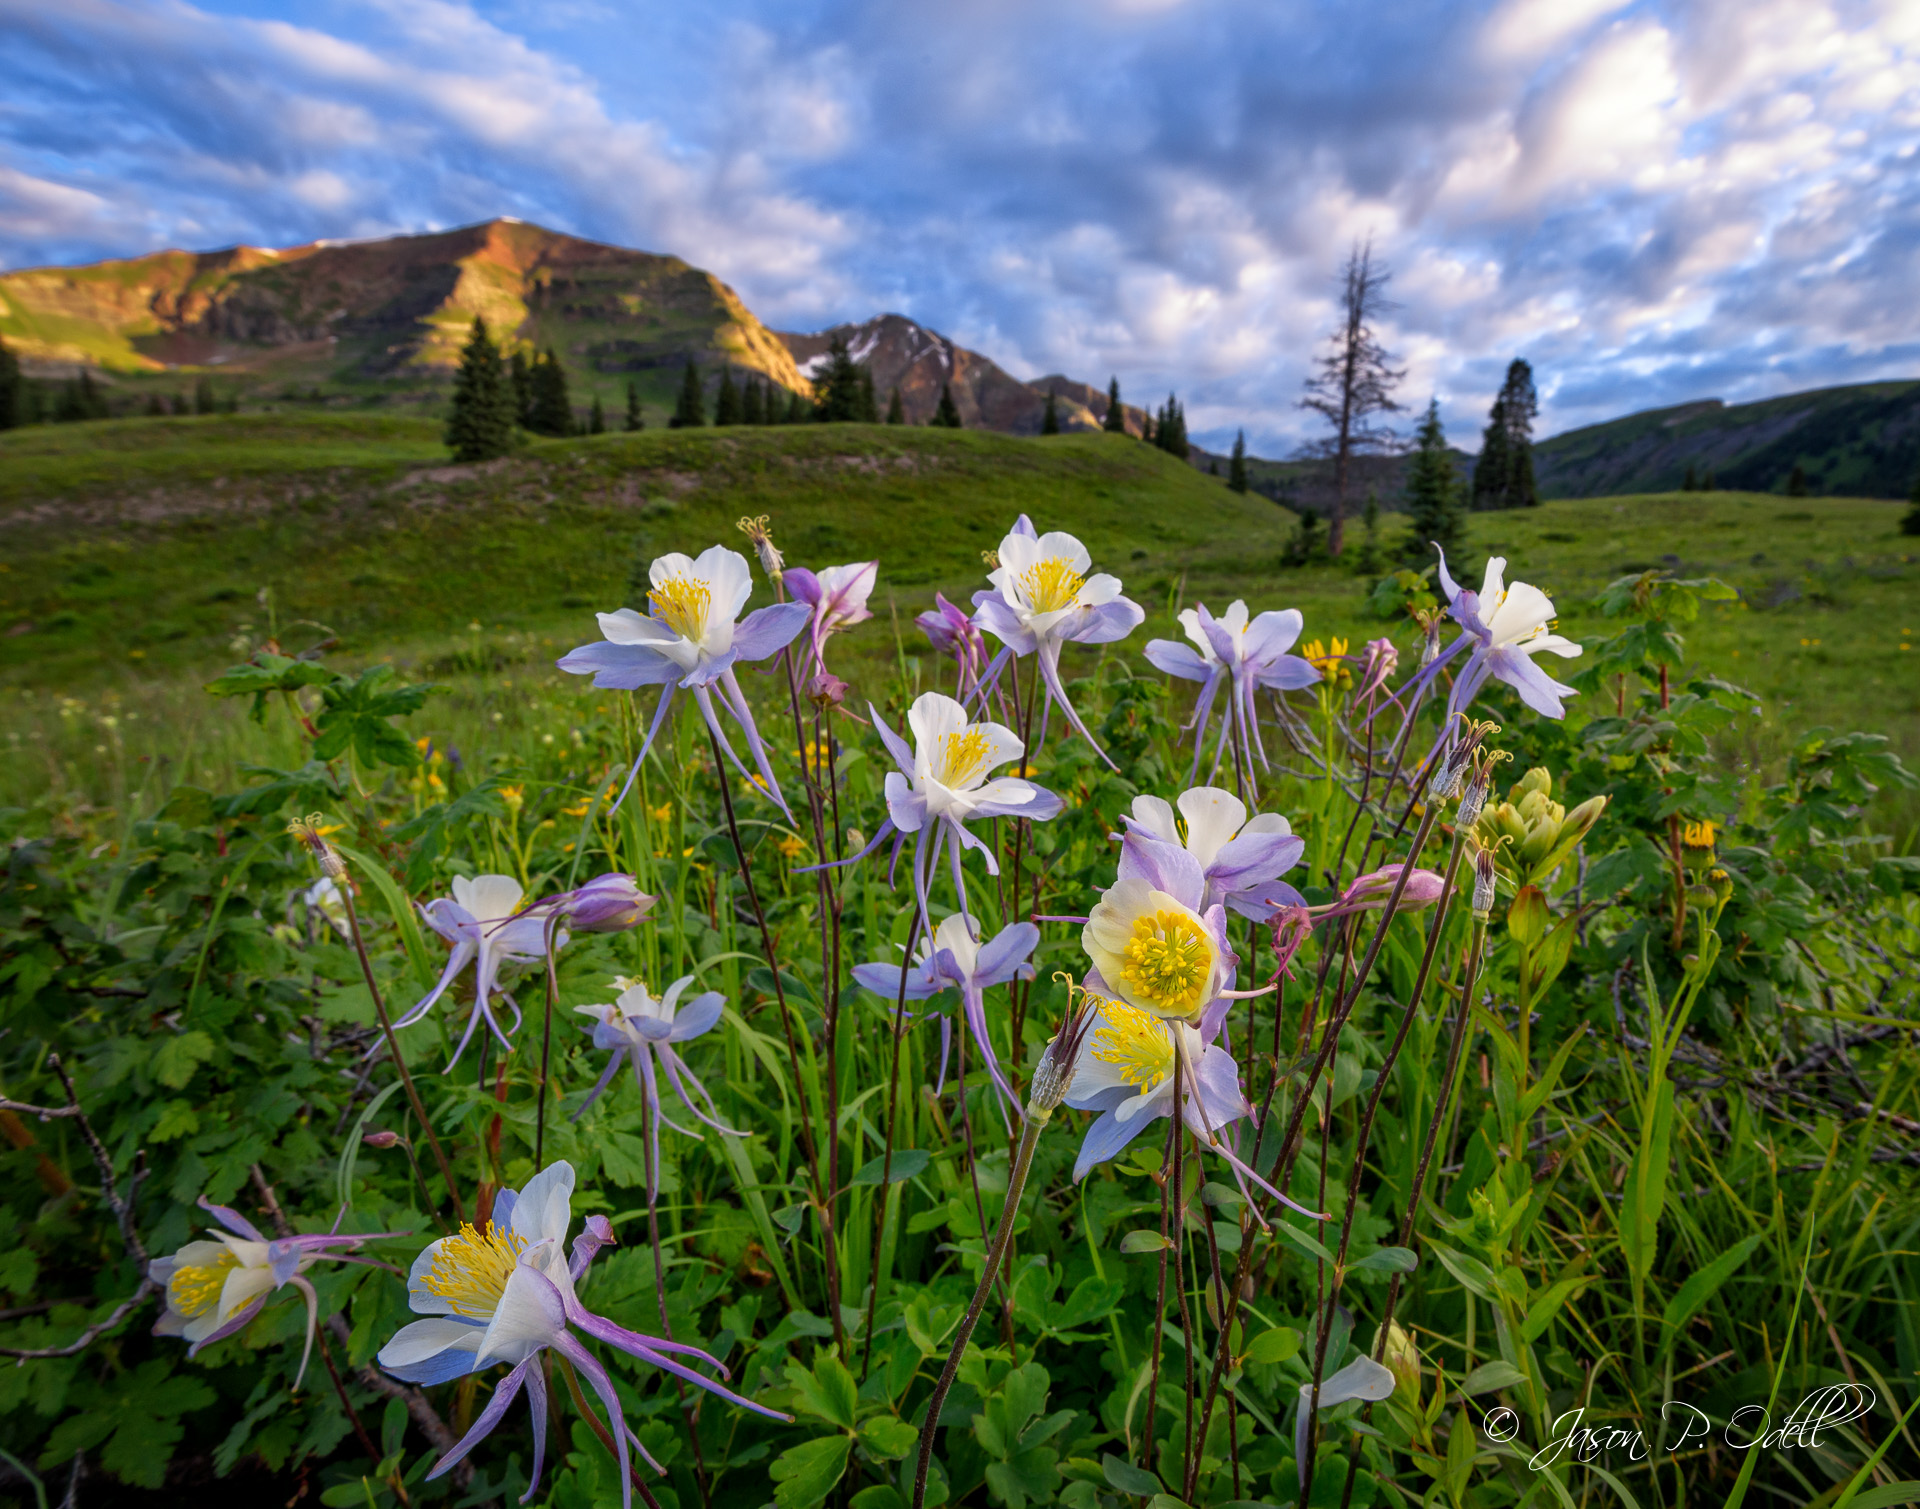 Columbines at sunrise near Crested Butte, Colorado. Join Jason Odell in July 2016 for a chance to photograph wildflowers and learn close-up photography techniques.